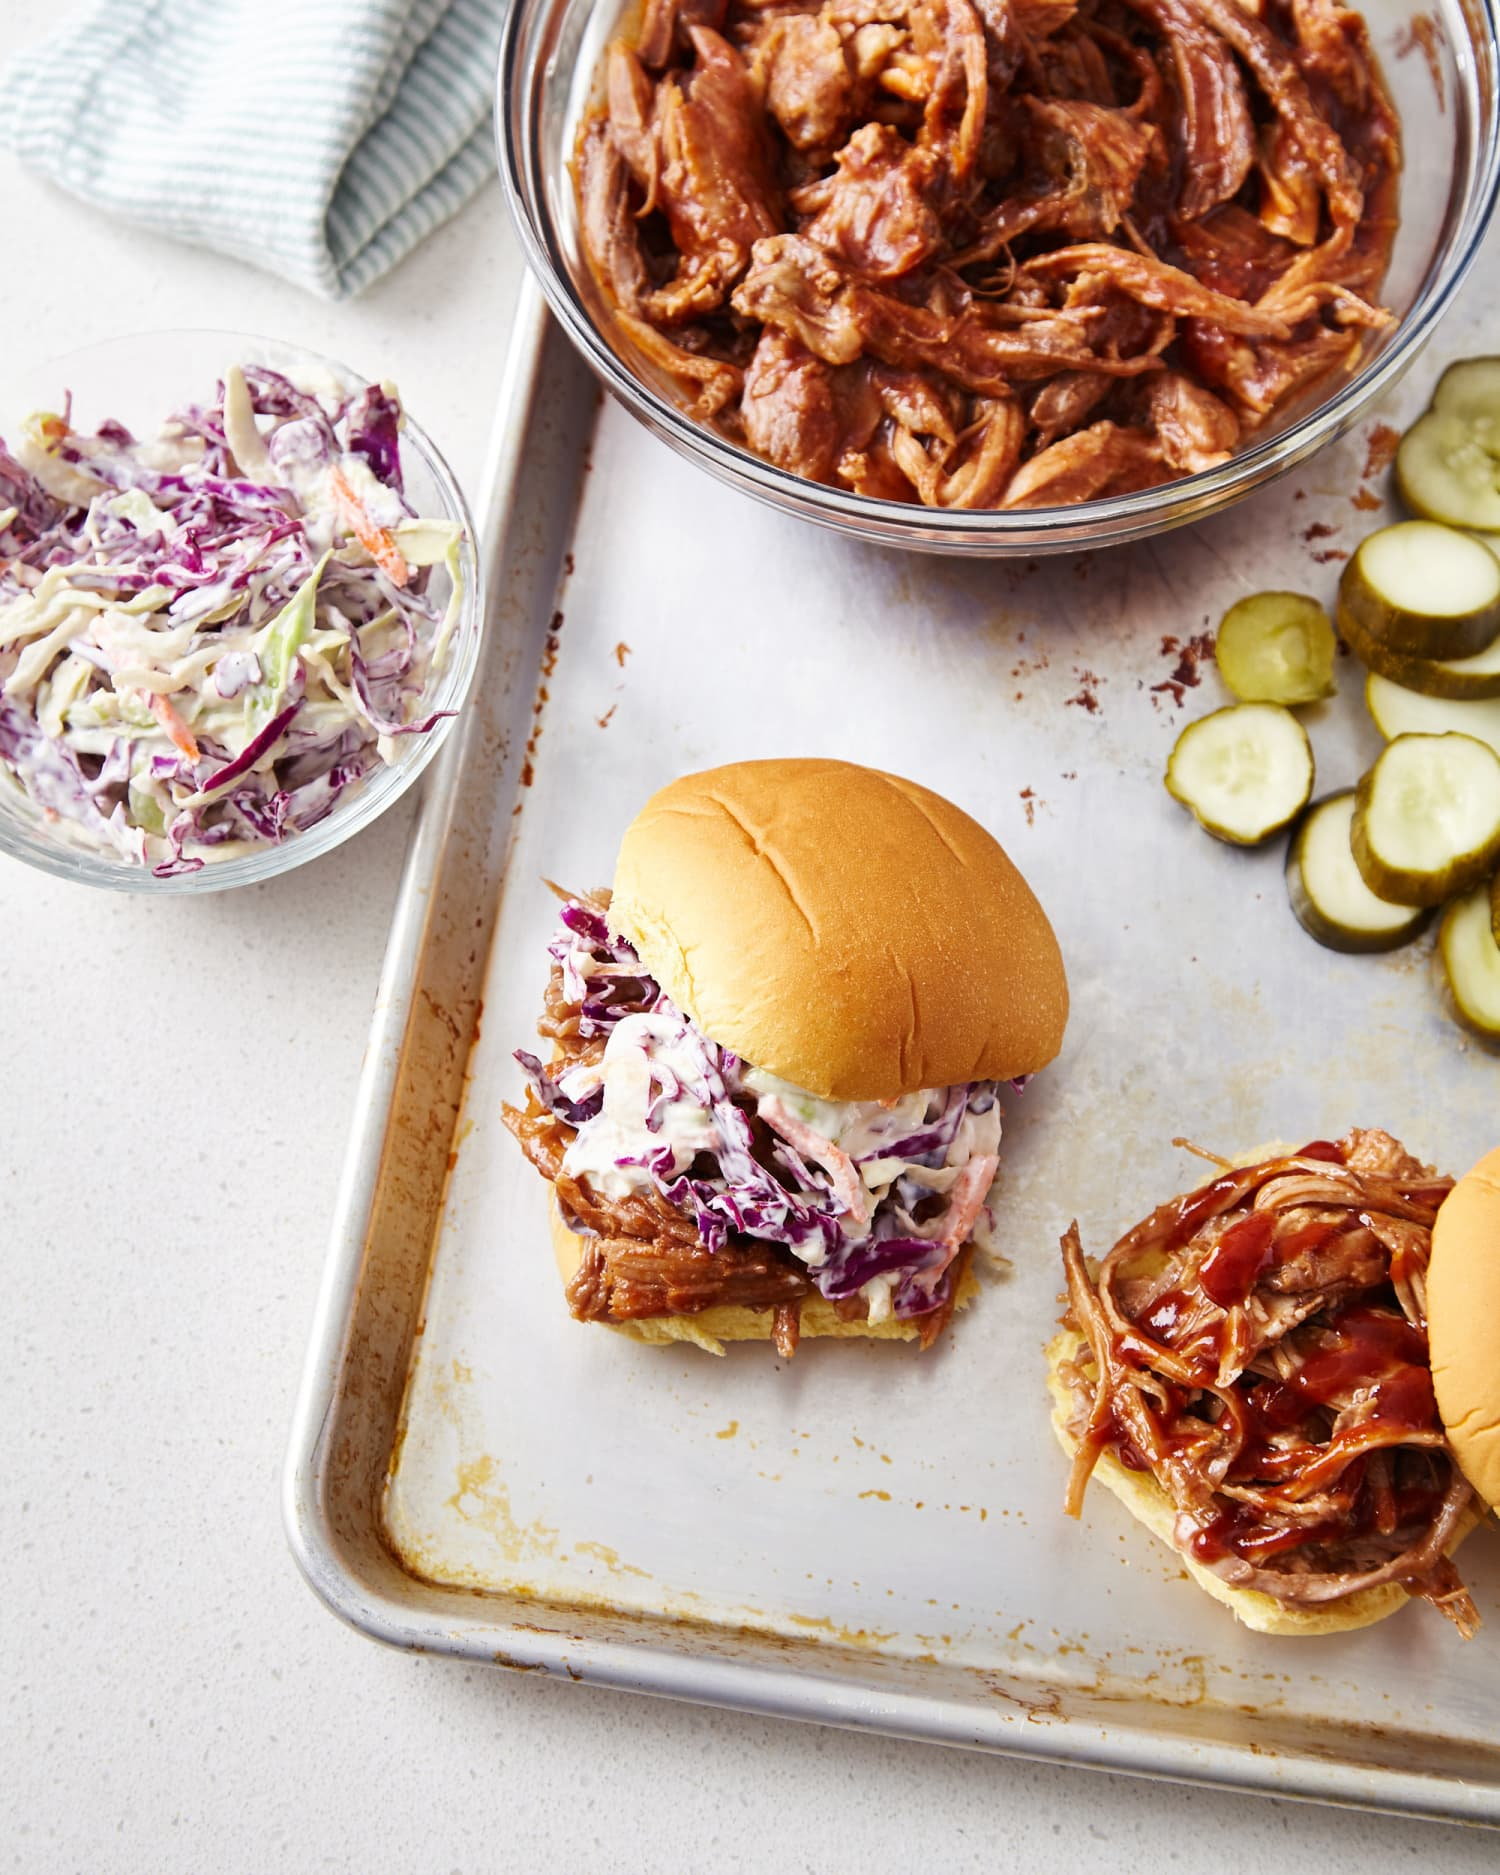 Recipe: The Easiest Slow Cooker Pulled Pork